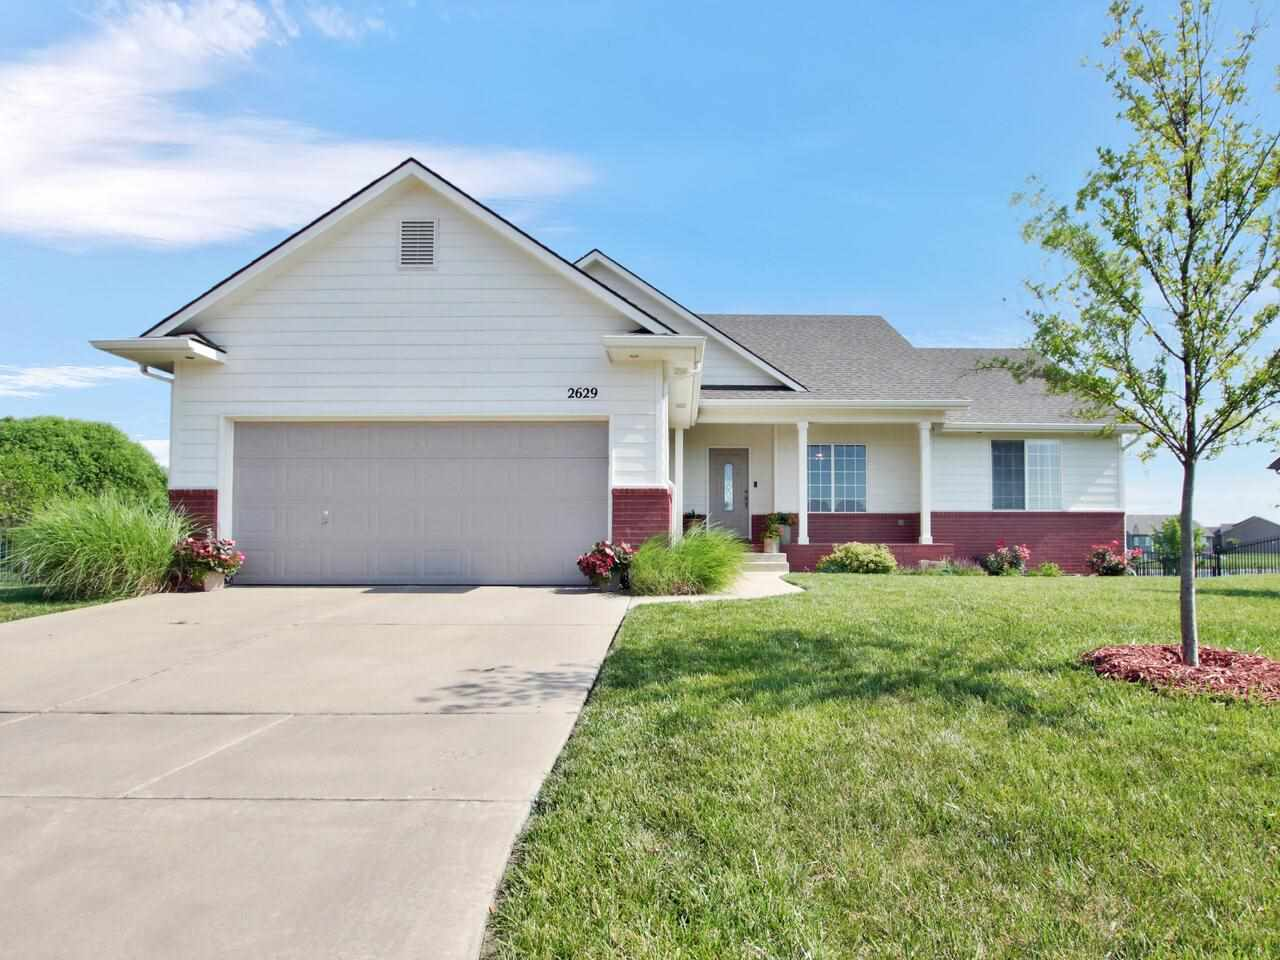 Perfectly set on a lake lot, this Northeast Wichita beauty is turnkey and full of natural light. The